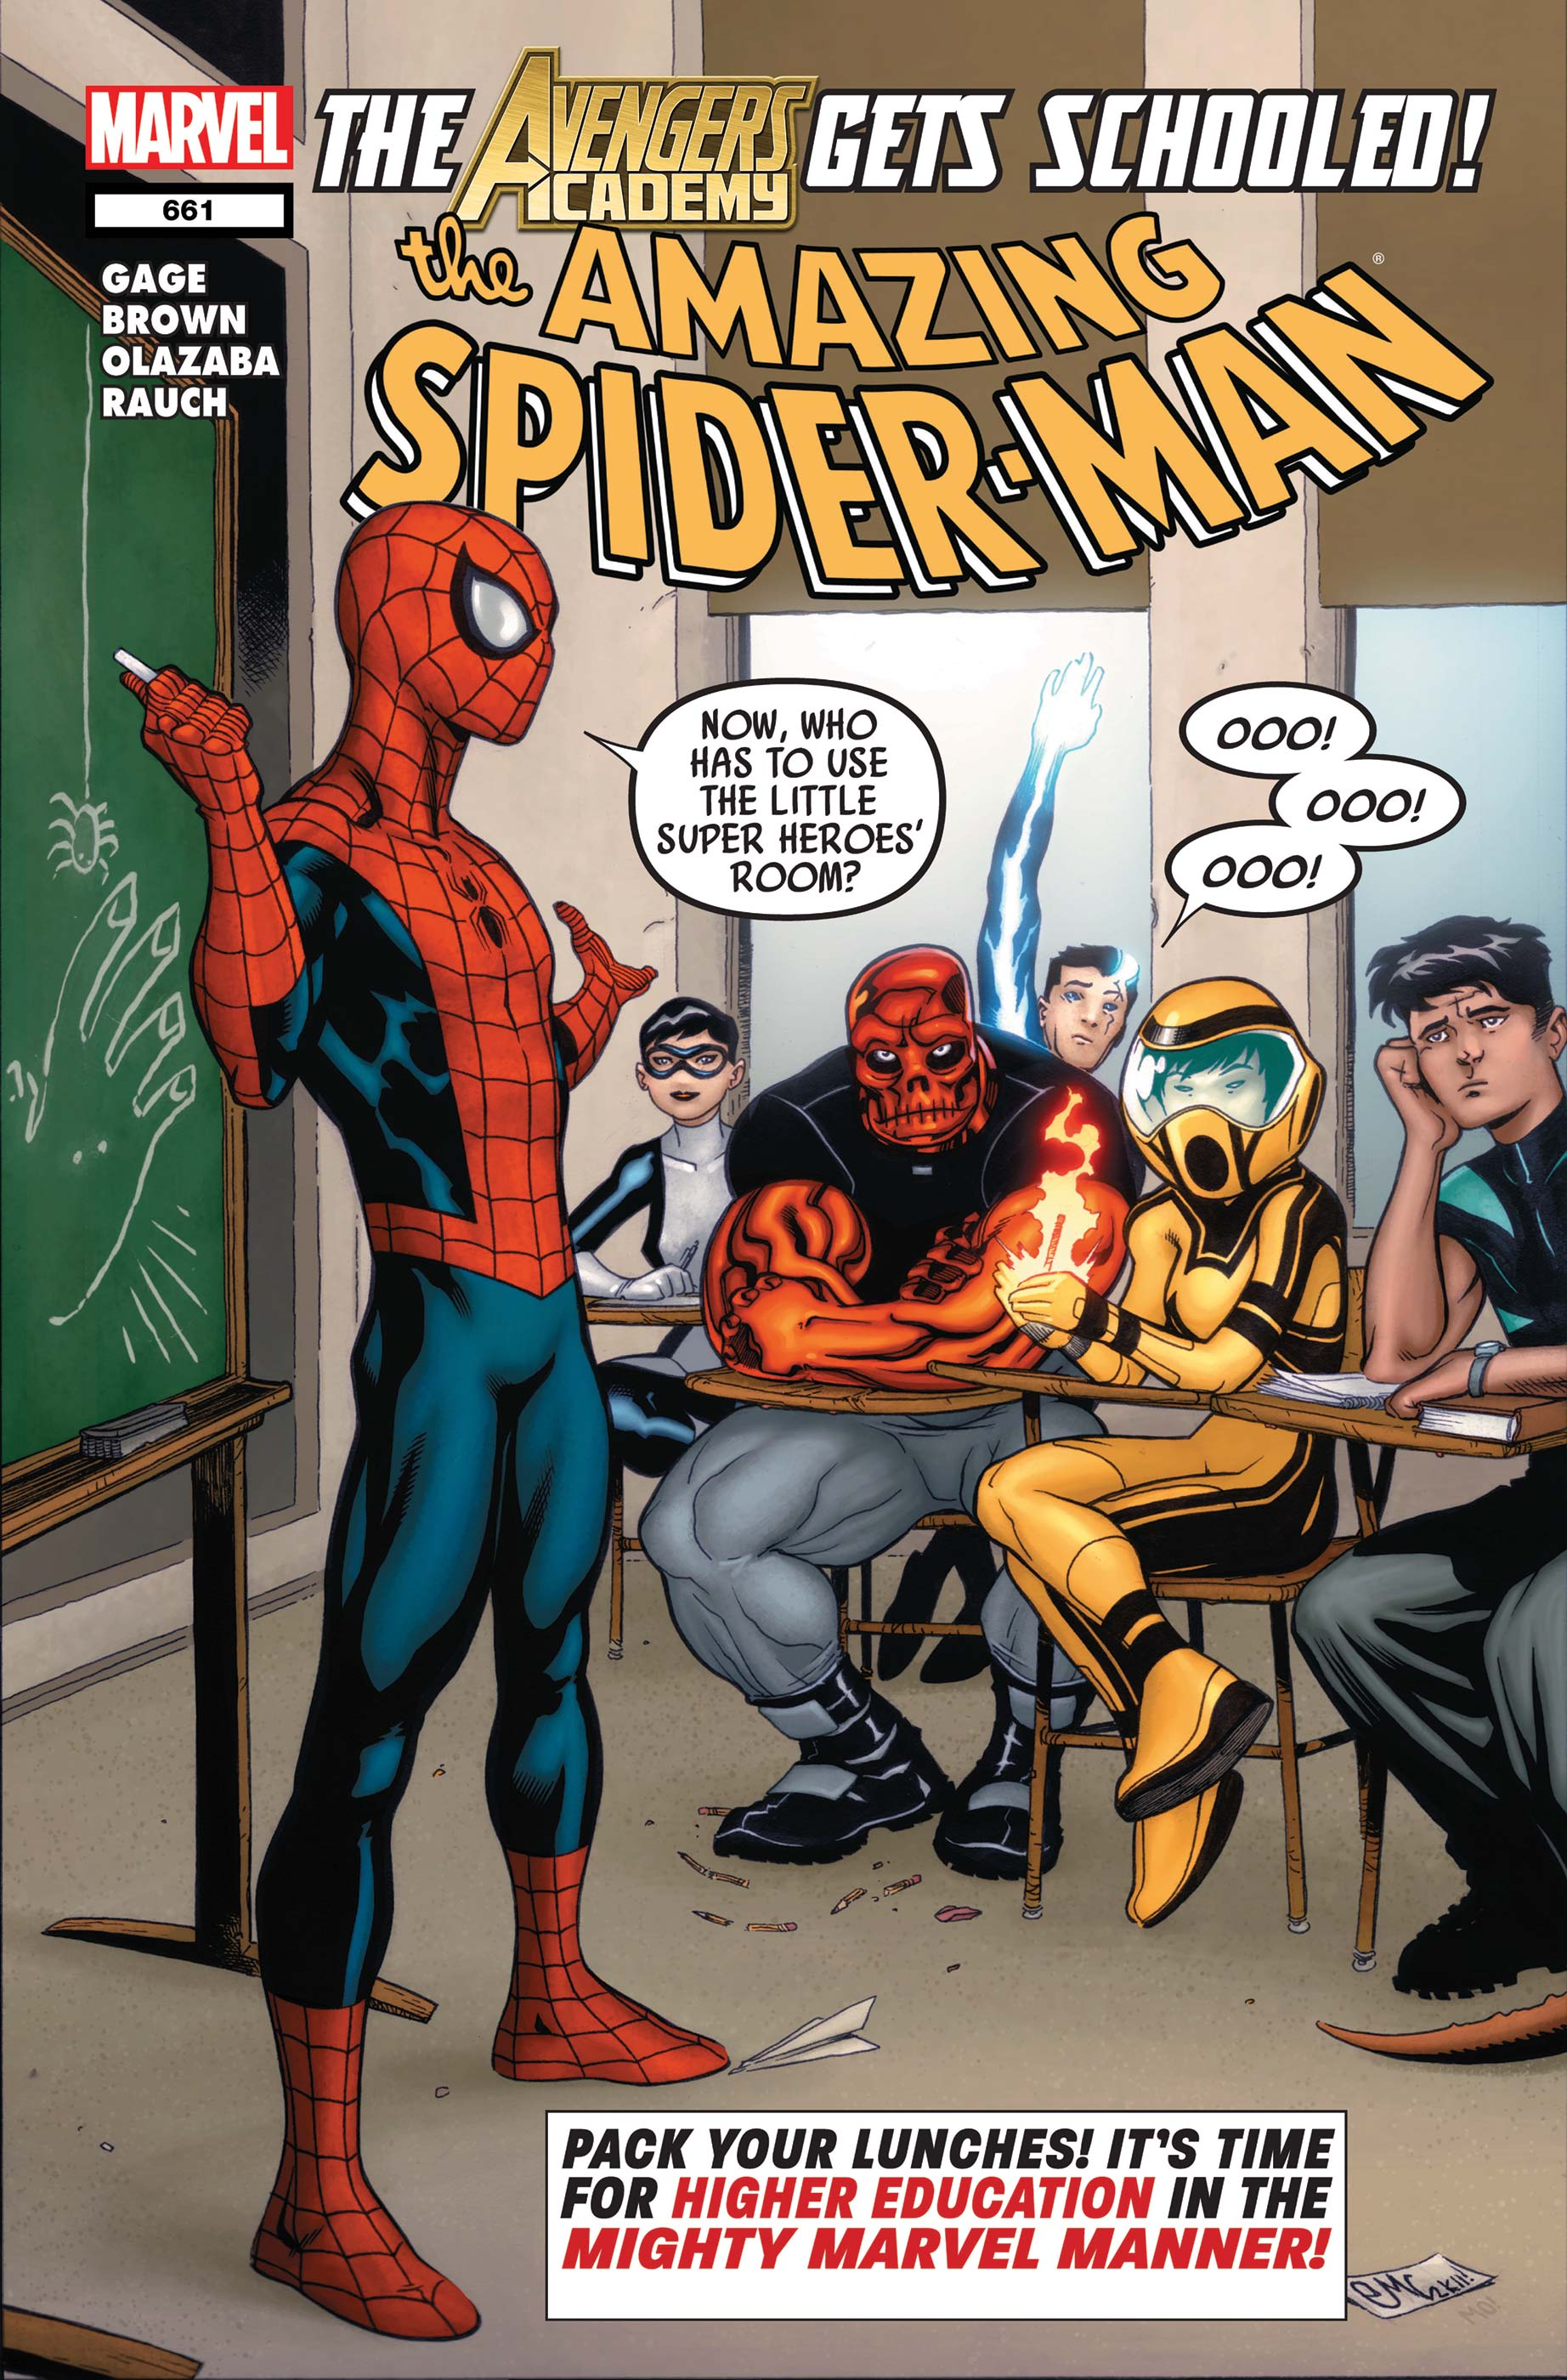 Amazing Spider-Man (1999) #661